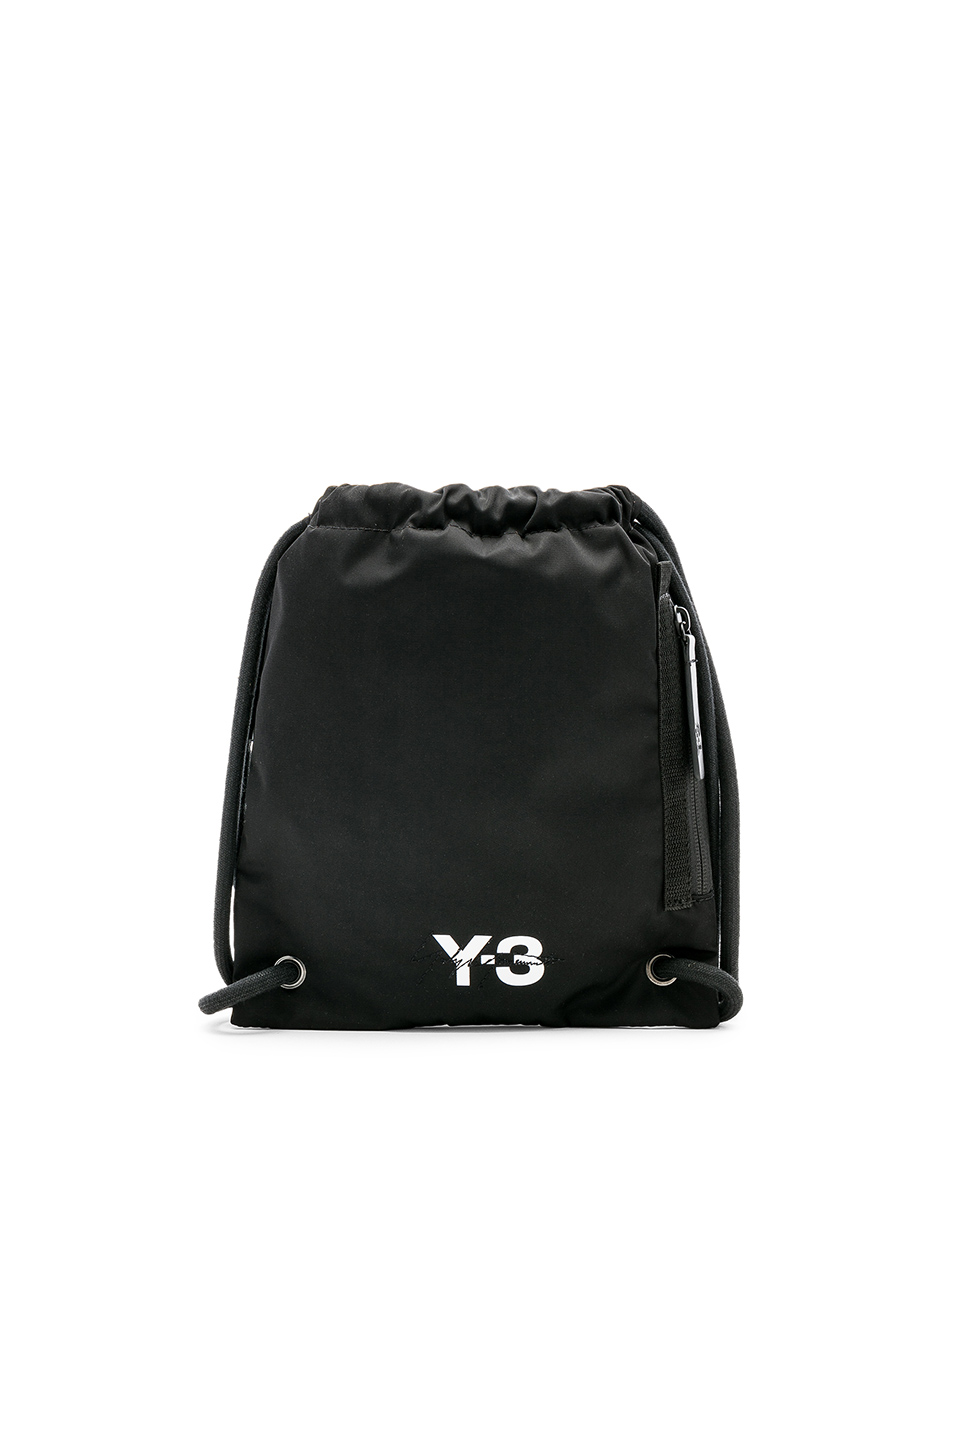 f72a25e7b80c Buy Original Y-3 Yohji Yamamoto Mini Gym Bag at Indonesia